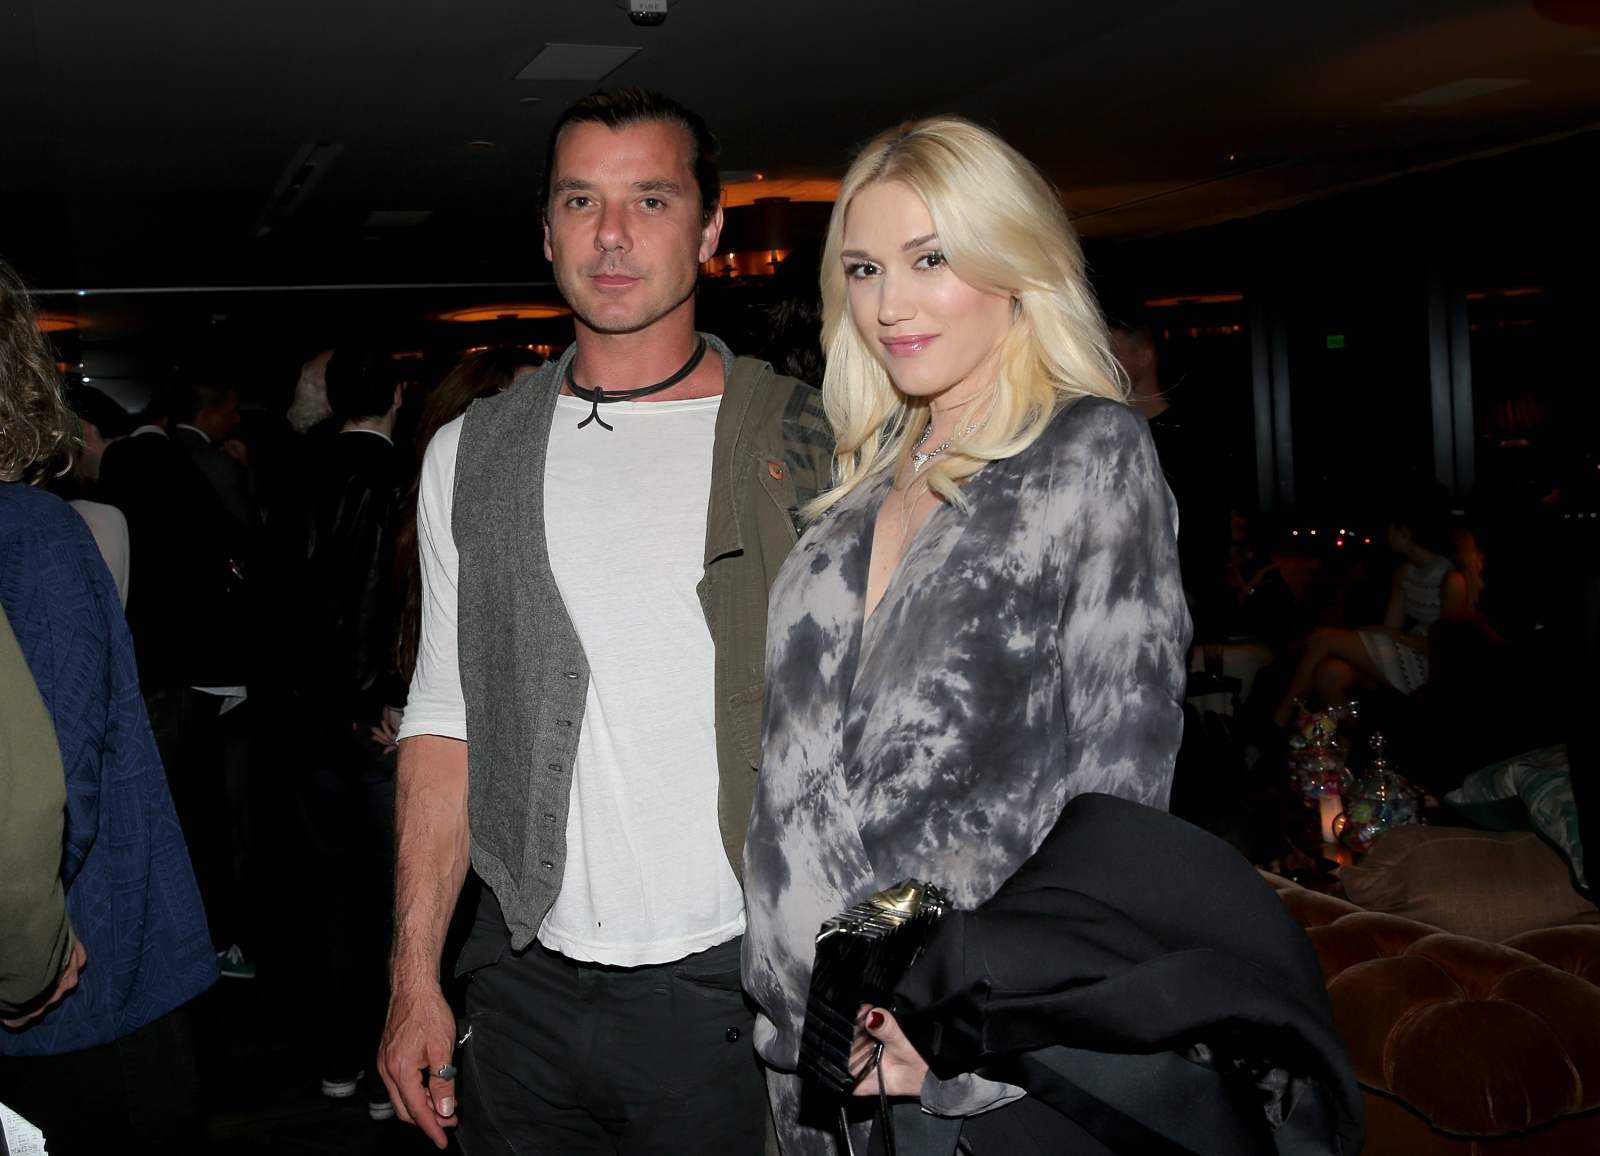 gwen stefani u0026 39 s ex gavin rossdale says  u0026 39 it u0026 39 s not my year